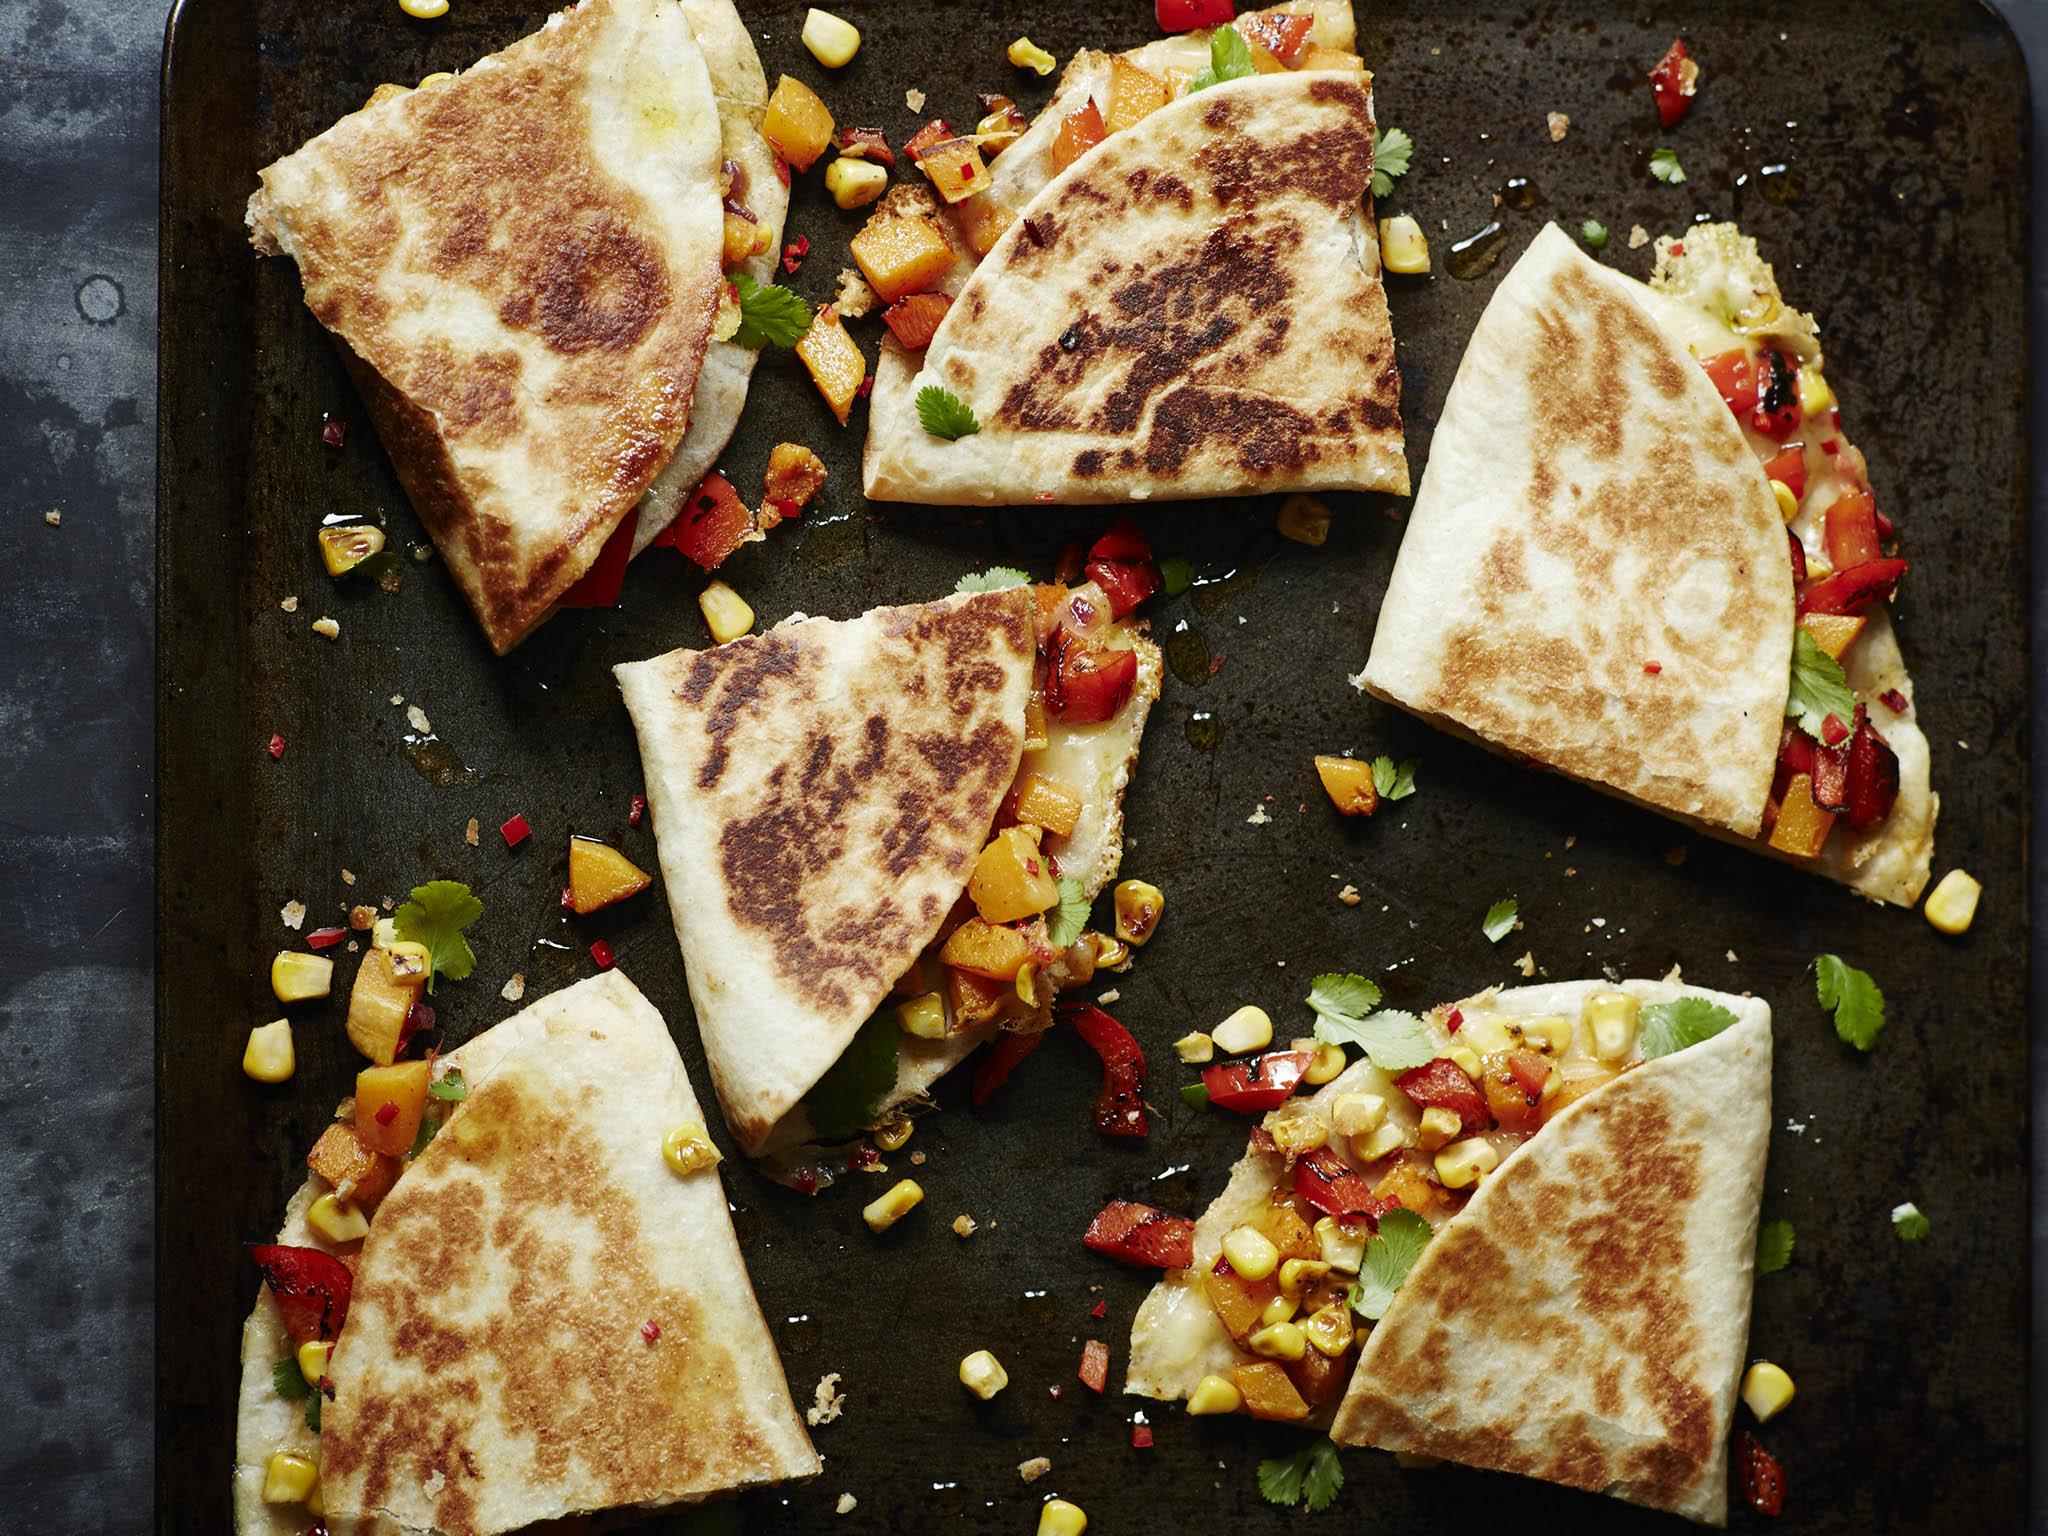 How to make vegetable quesadillas 1